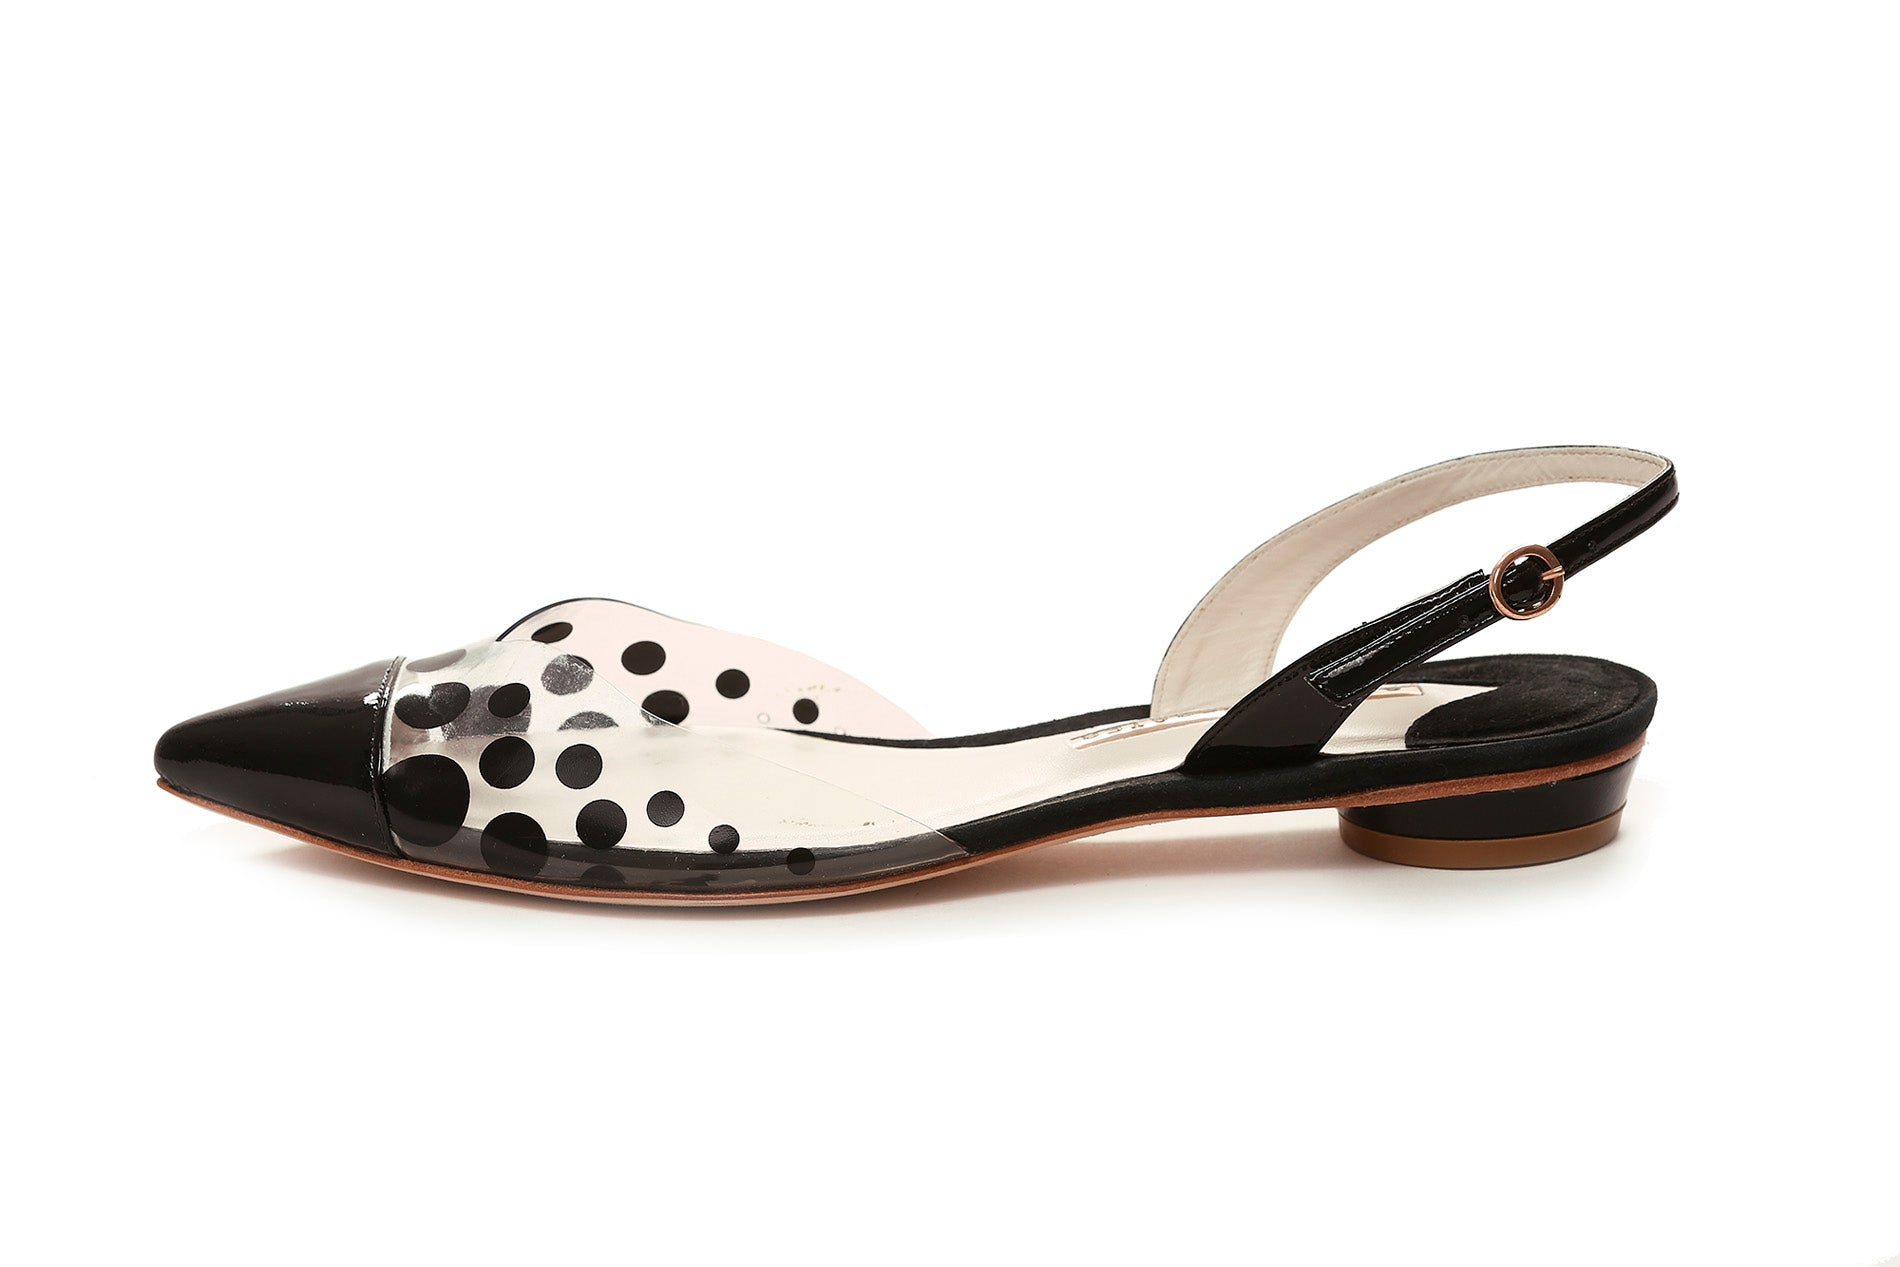 7a61ff232f Designer Flat Sling Backs Shoes | Sophia Webster | theFinds